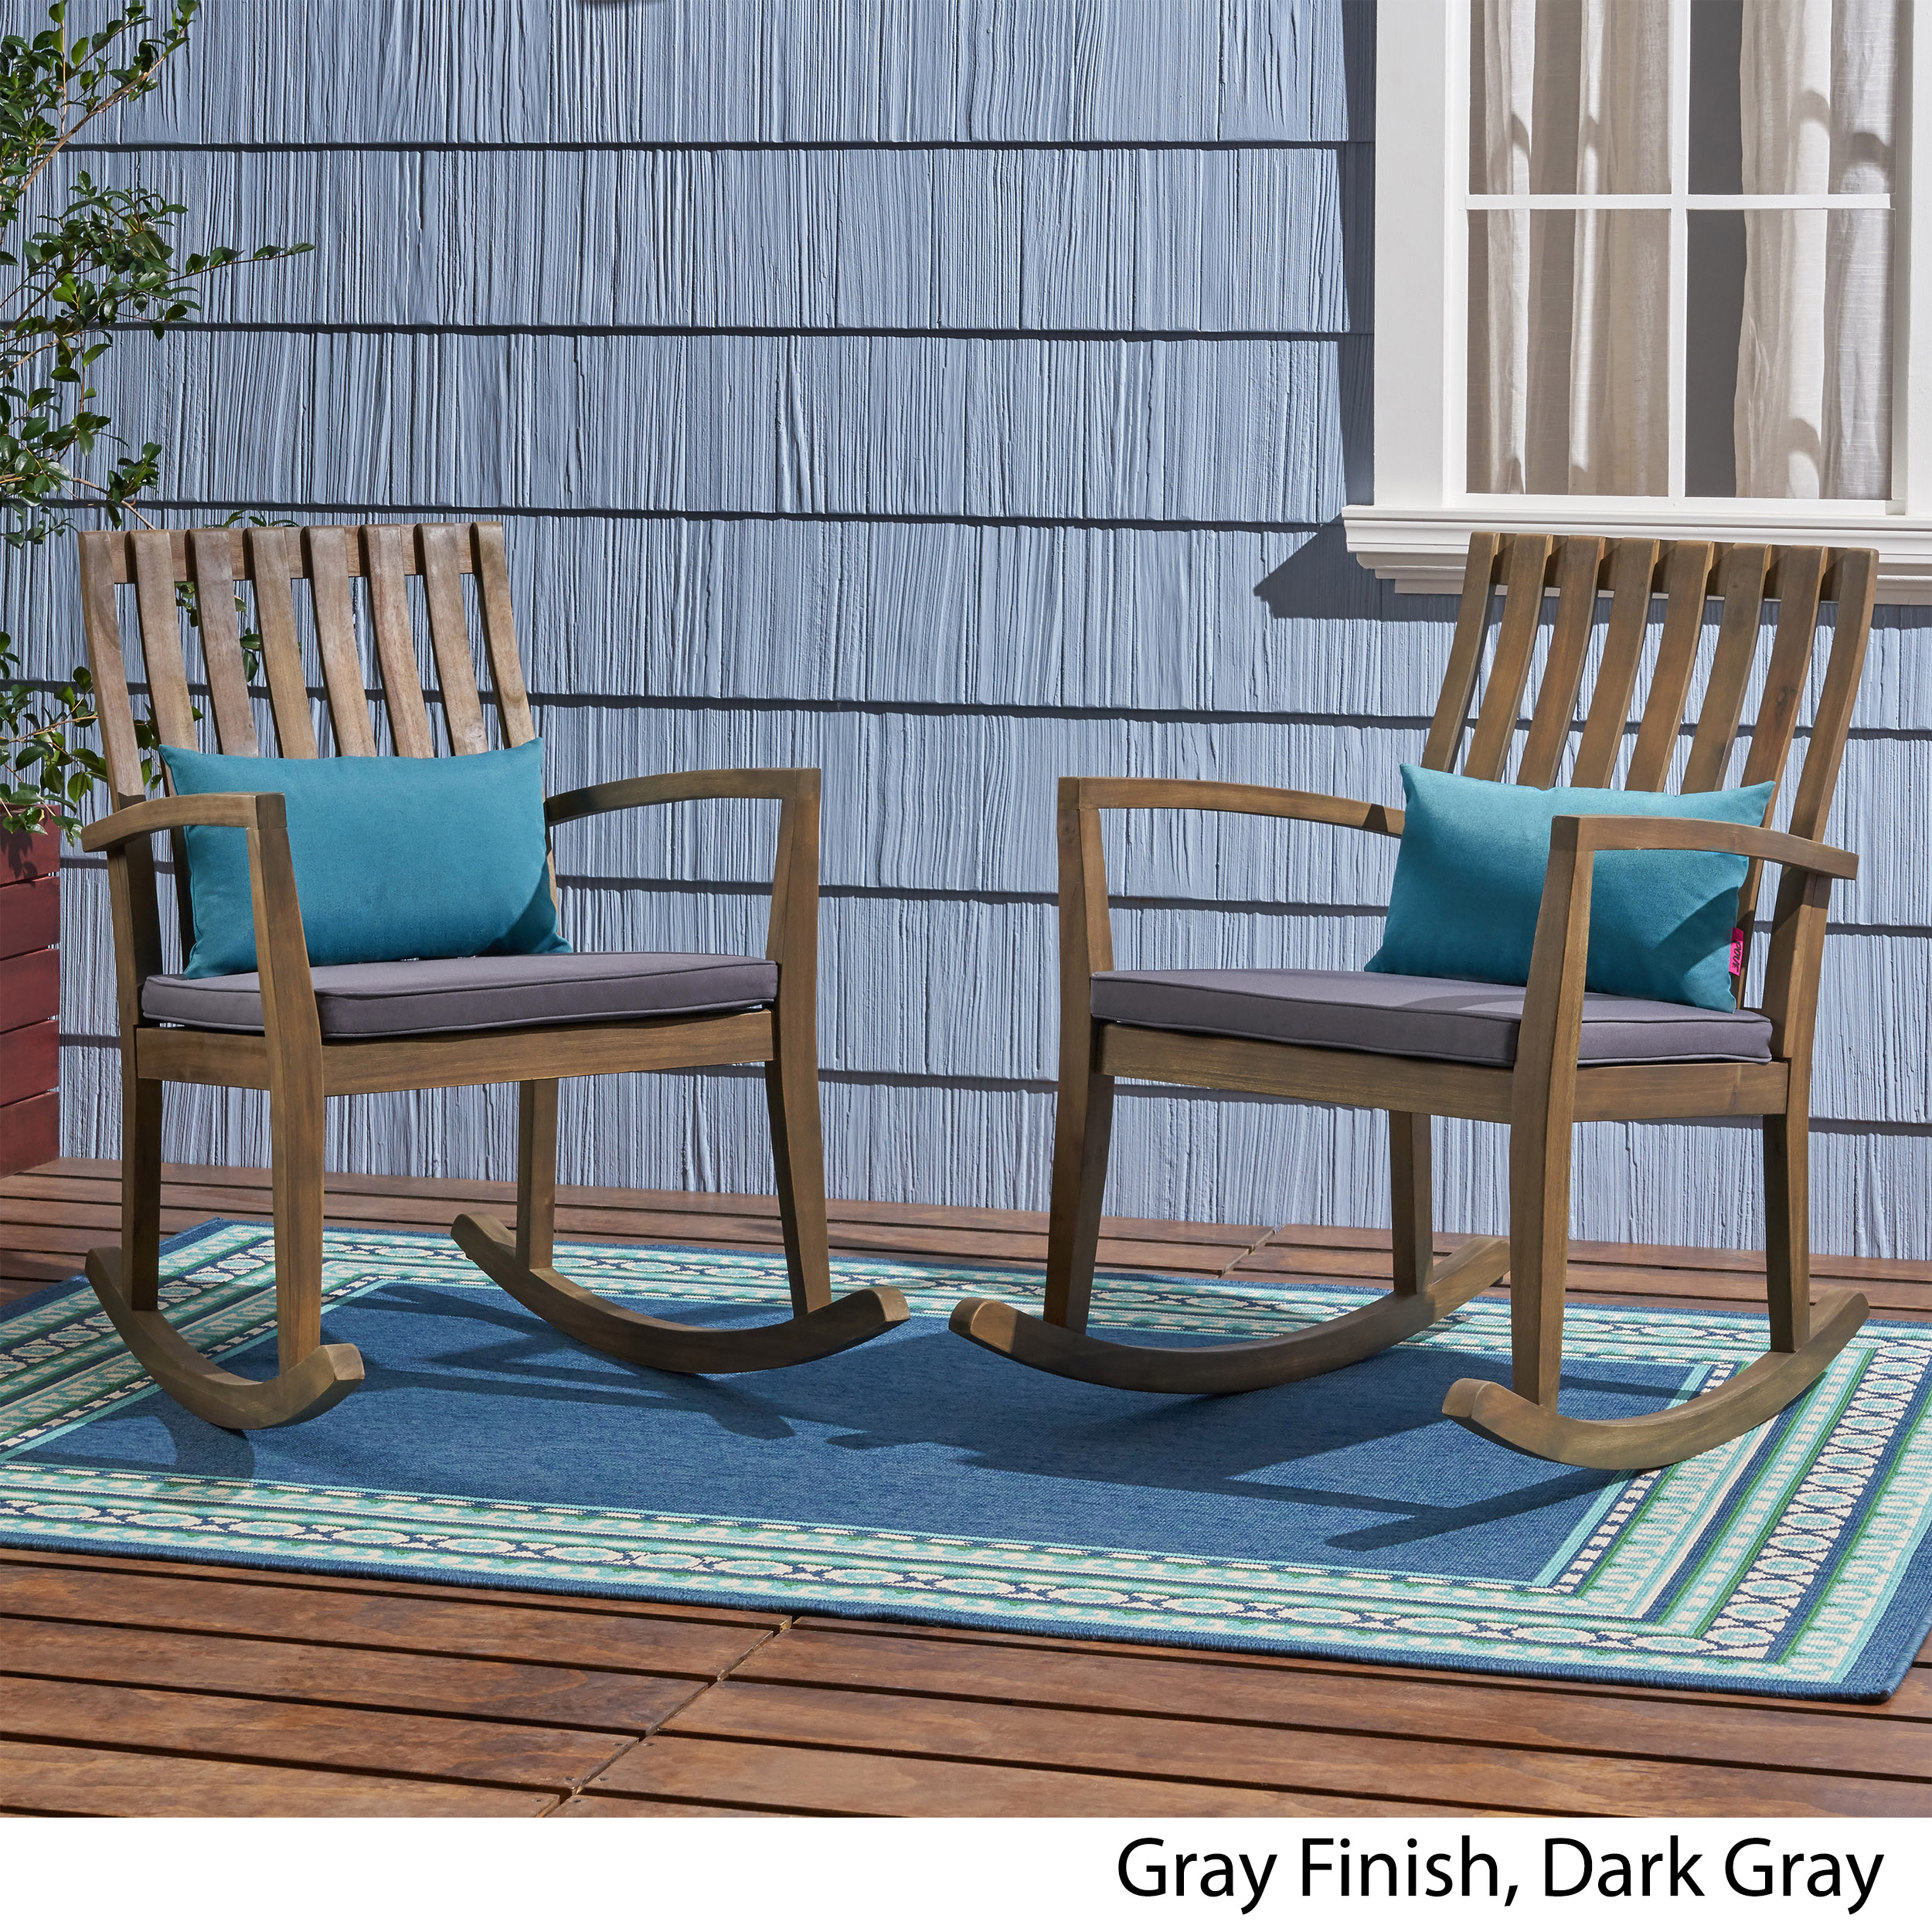 Admirable Colmena Outdoor Acacia Wood Rocking Chair With Cushions Set Of 2 Ibusinesslaw Wood Chair Design Ideas Ibusinesslaworg